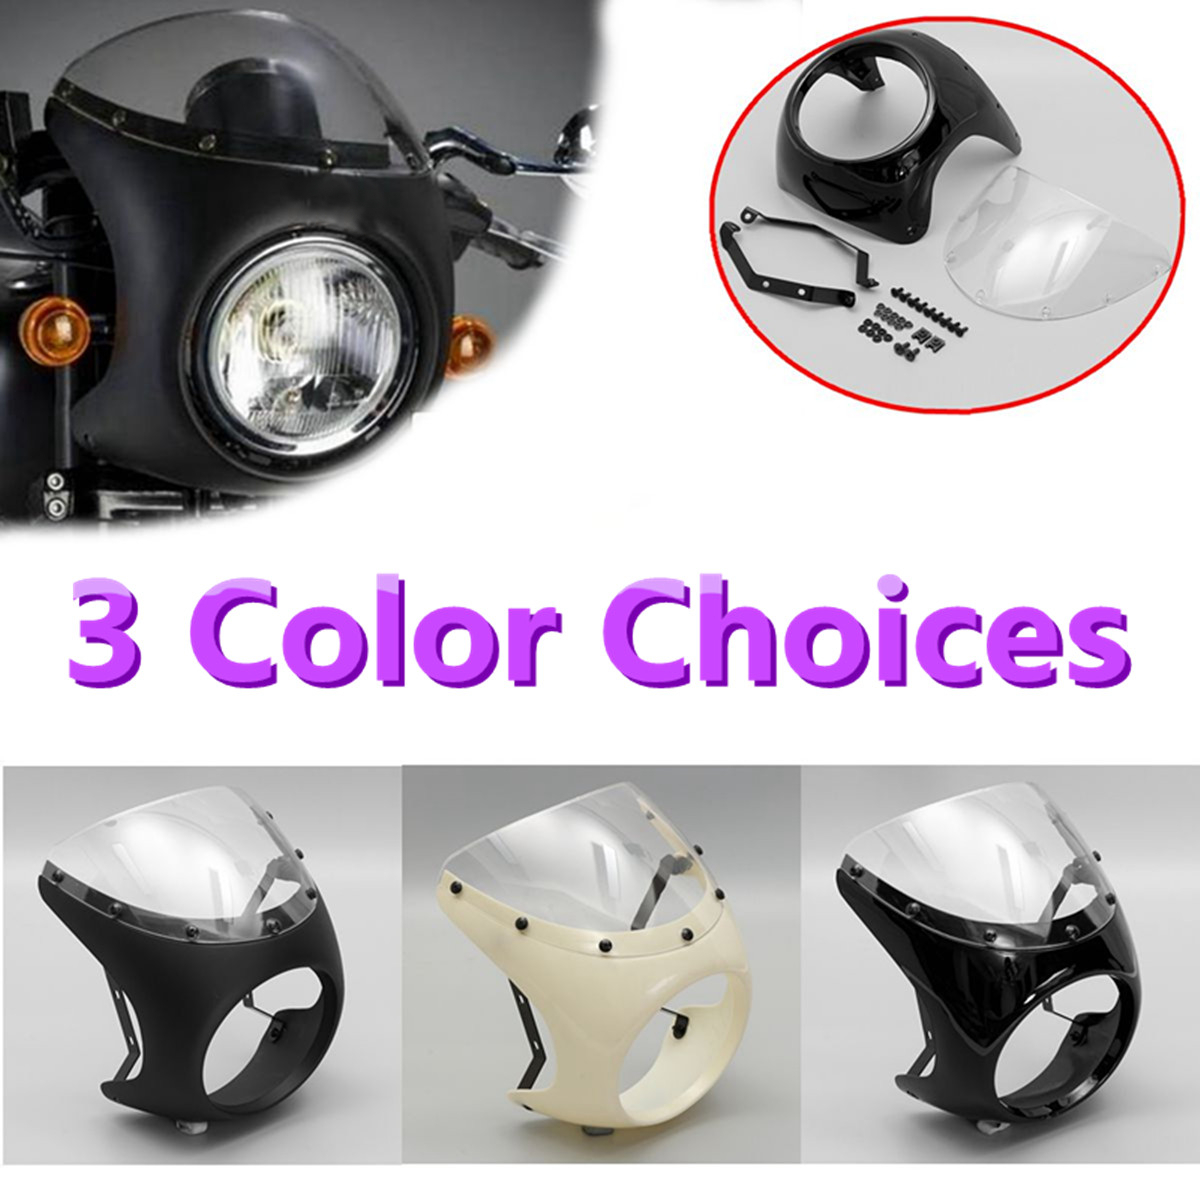 7inch Motorcycle Headlight Handlebar Fairing Retro Cafe Racer Style Universal